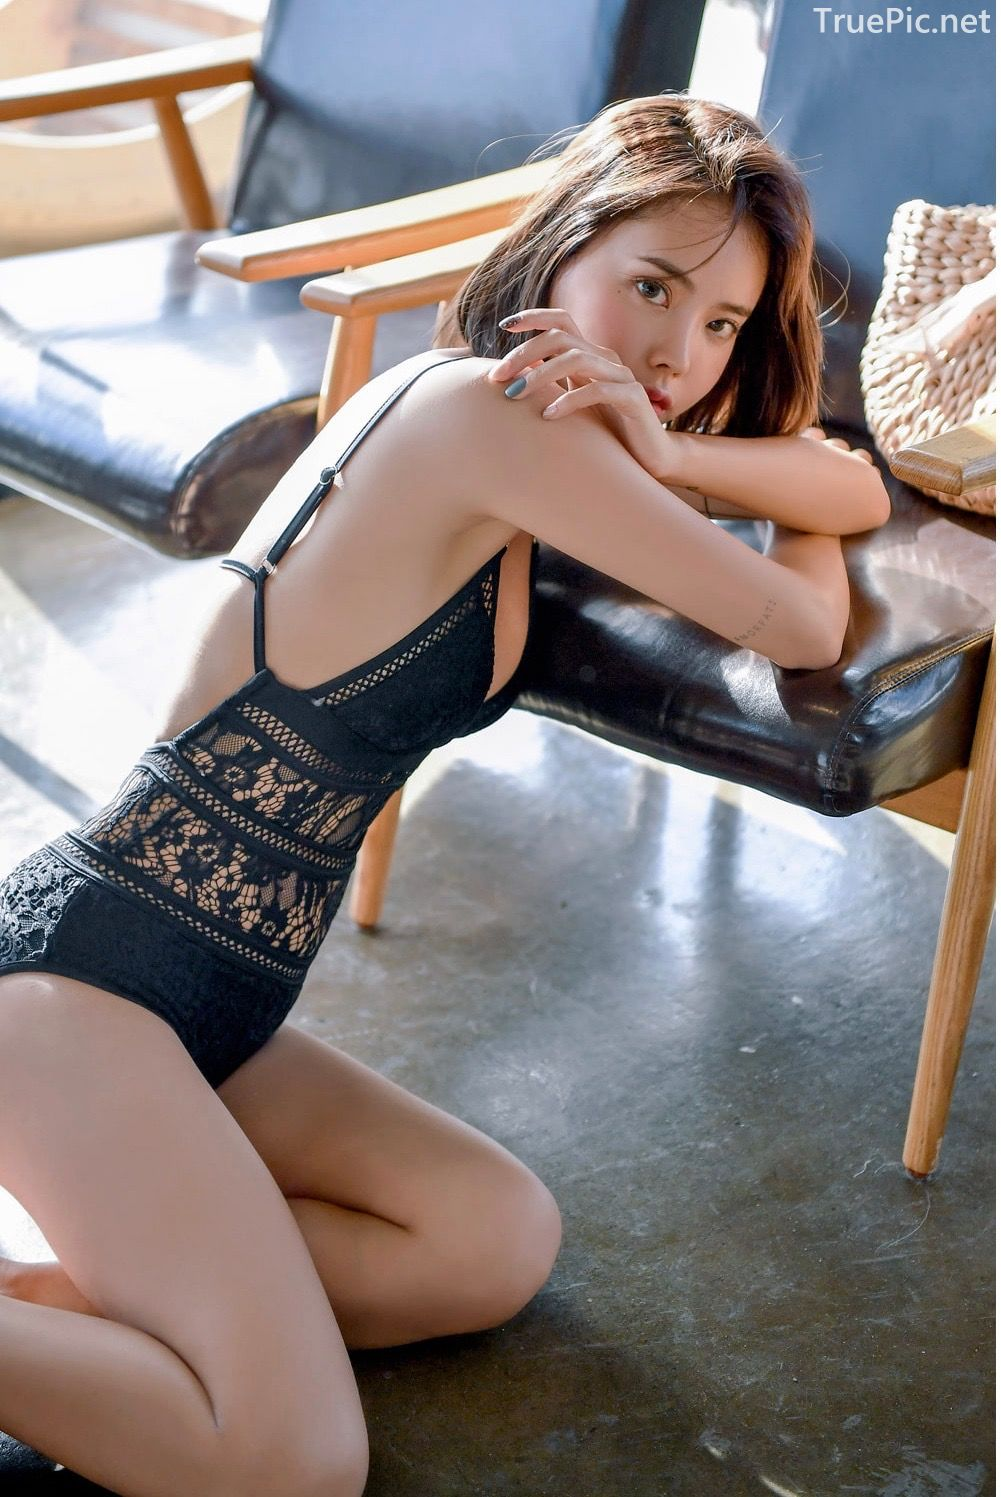 Korean hot model and fashion - Song Yi - Black and White Swimsuit for Summer Vacation - Picture 7